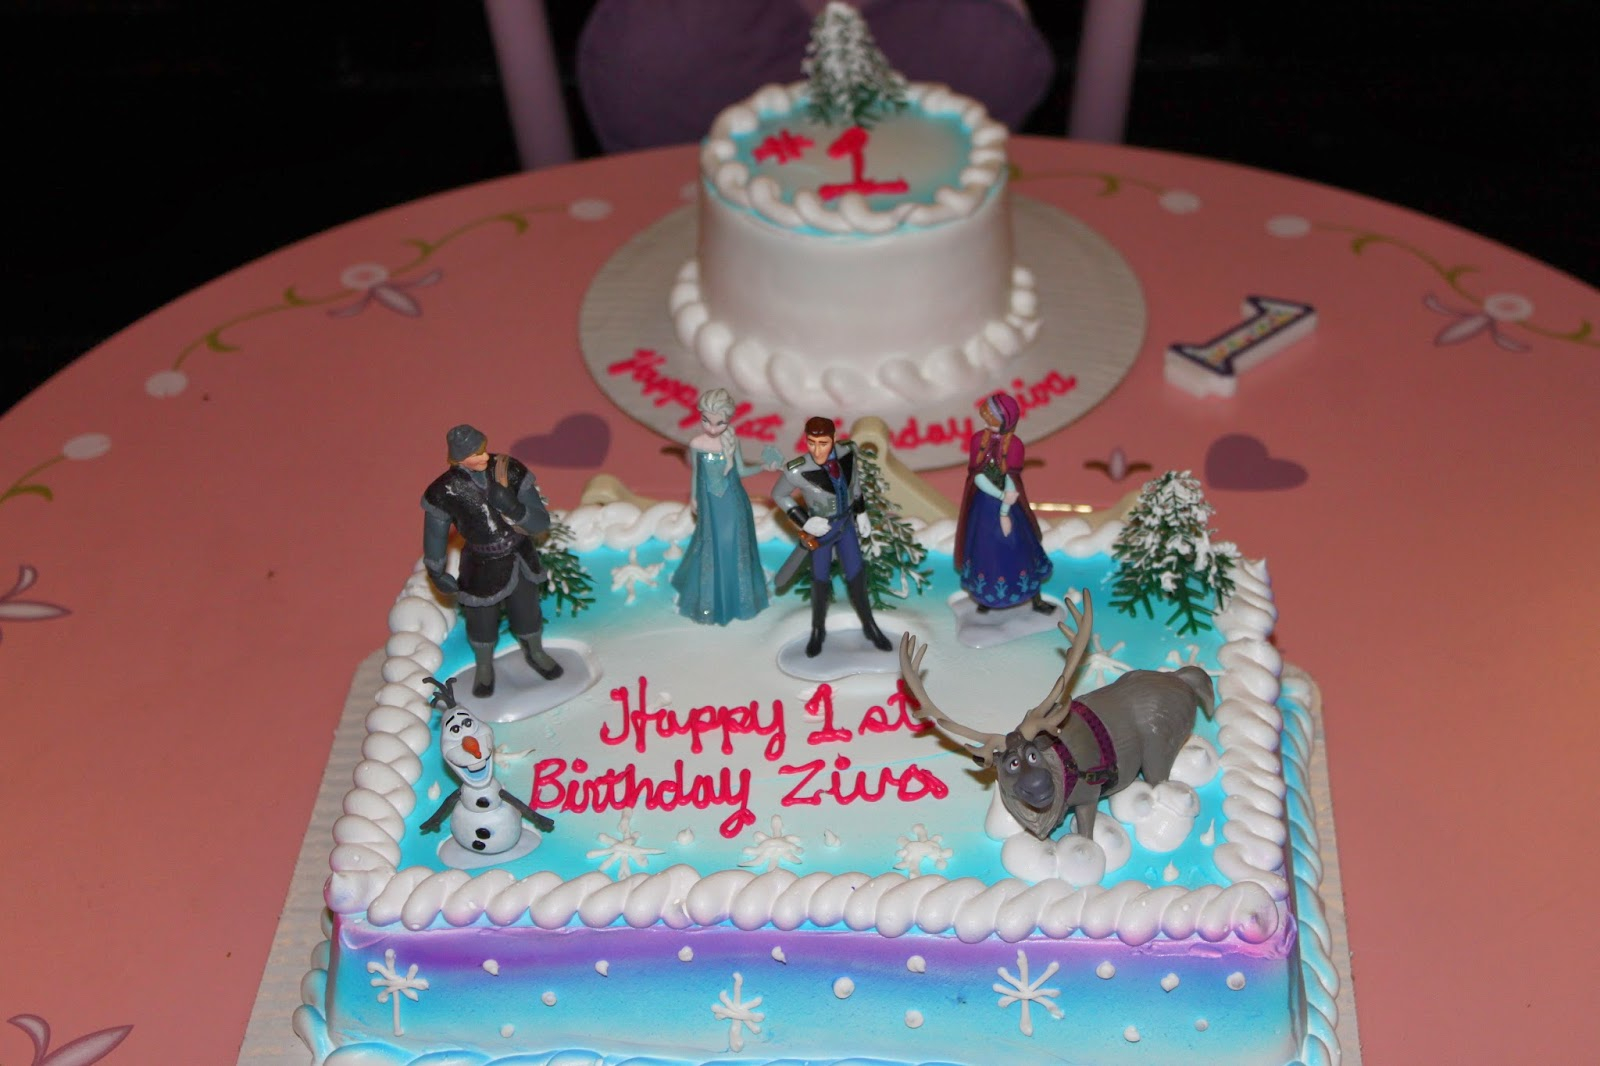 Frozen Themed Birthday Cakes 11 Frozen Birthday Cakes At Albertsons Photo Frozen Birthday Cake